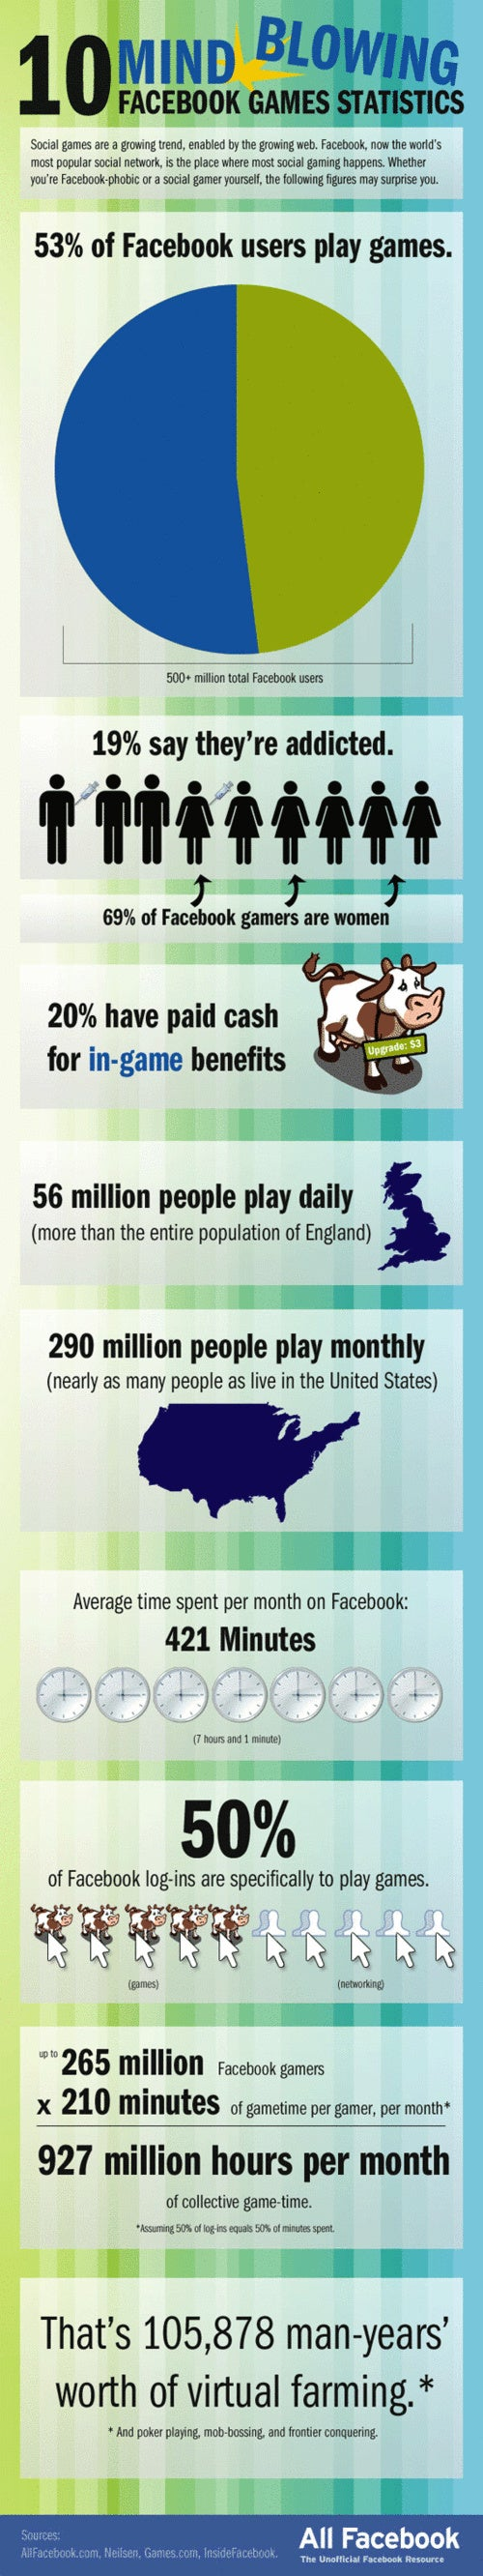 How Many Hours Does The Human Race Spend Playing Facebook Games Every Month?